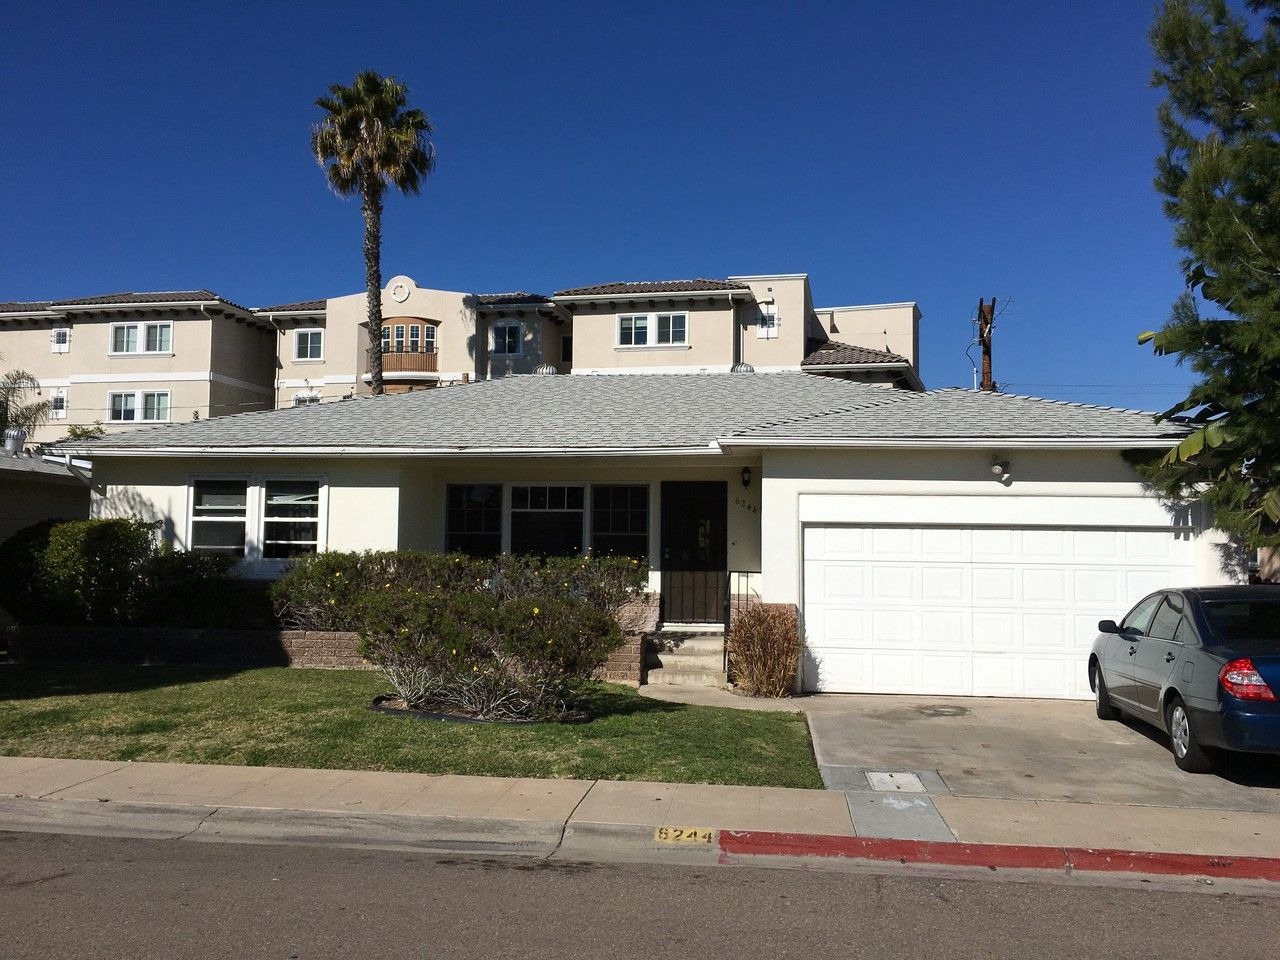 6244 mary ln dr san diego ca 92115 5 bedroom house for - 2 bedroom homes for rent san diego ...